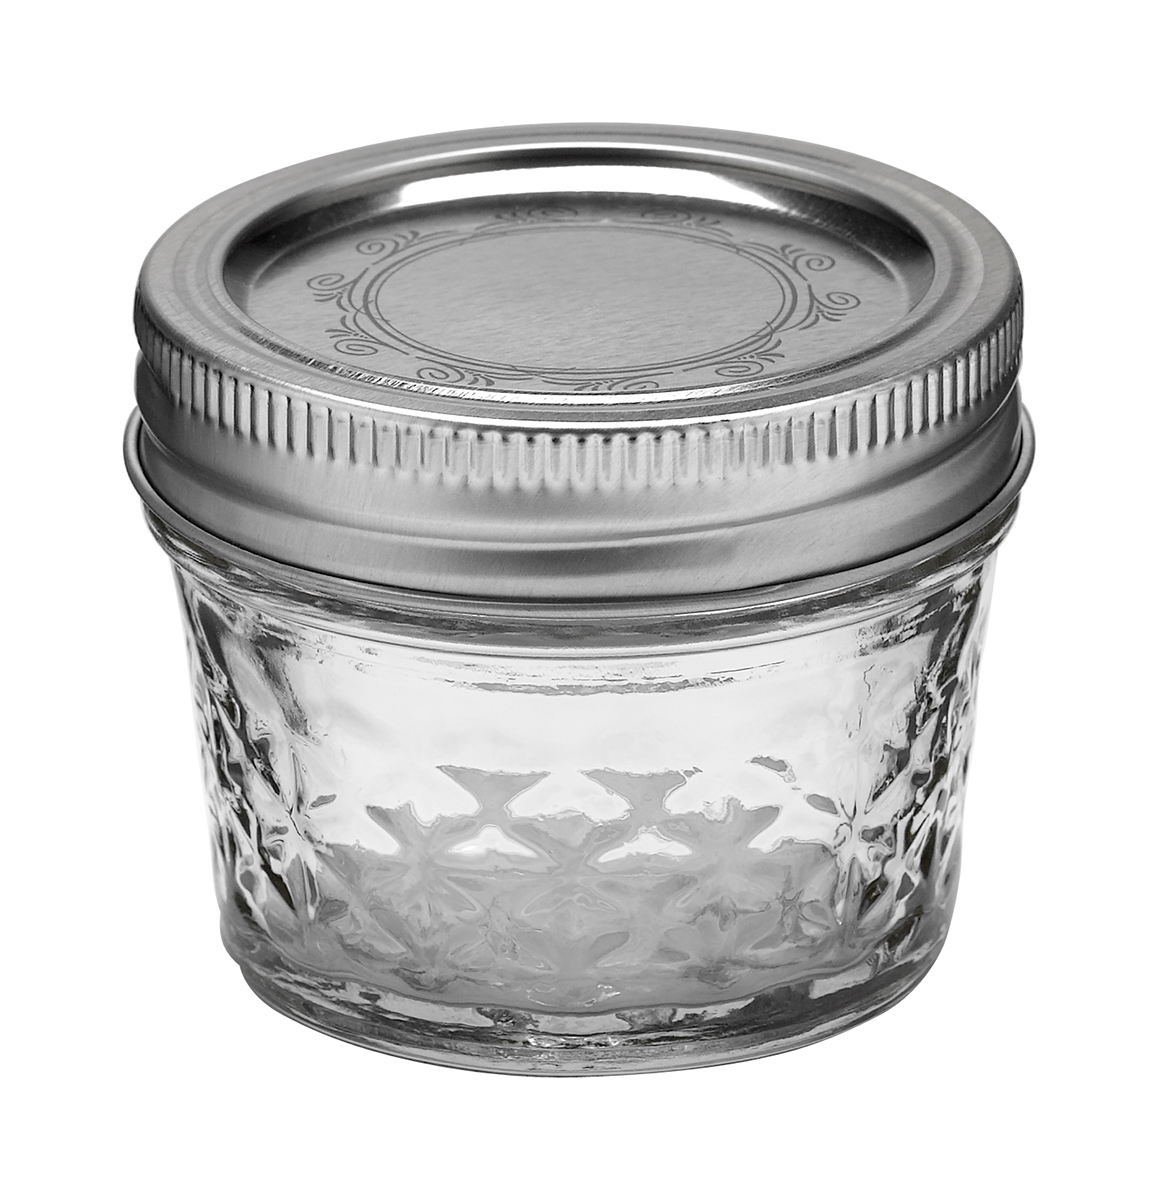 Ball Jar 4oz Quilted Crystal - 12 PACK